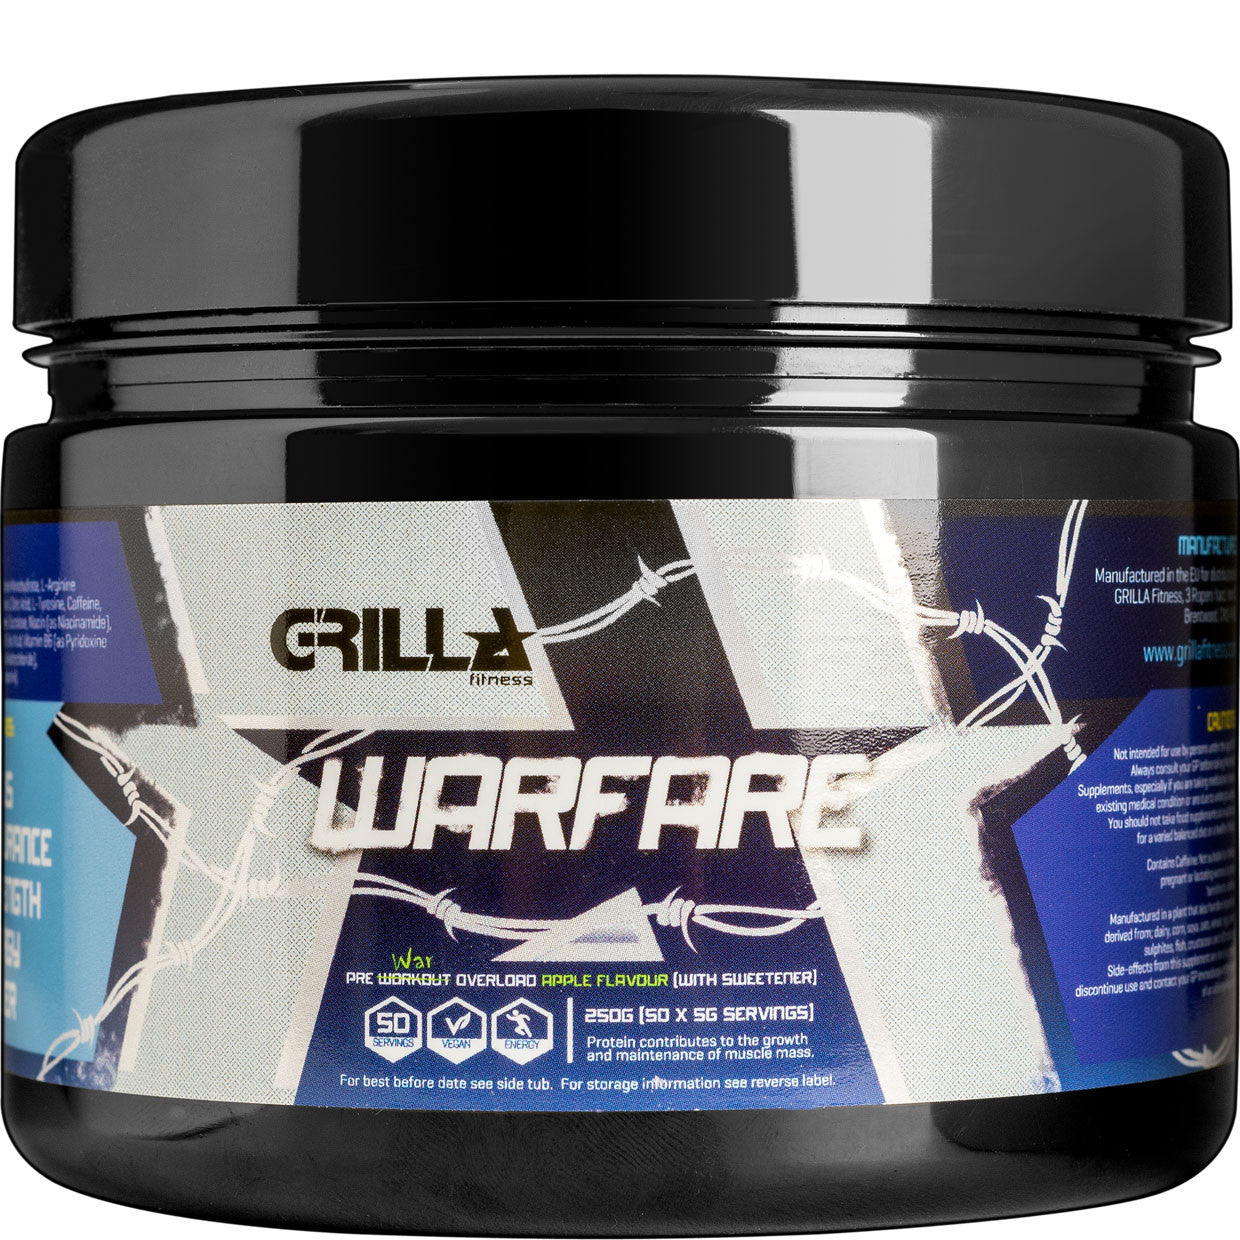 Warfare Pre workout